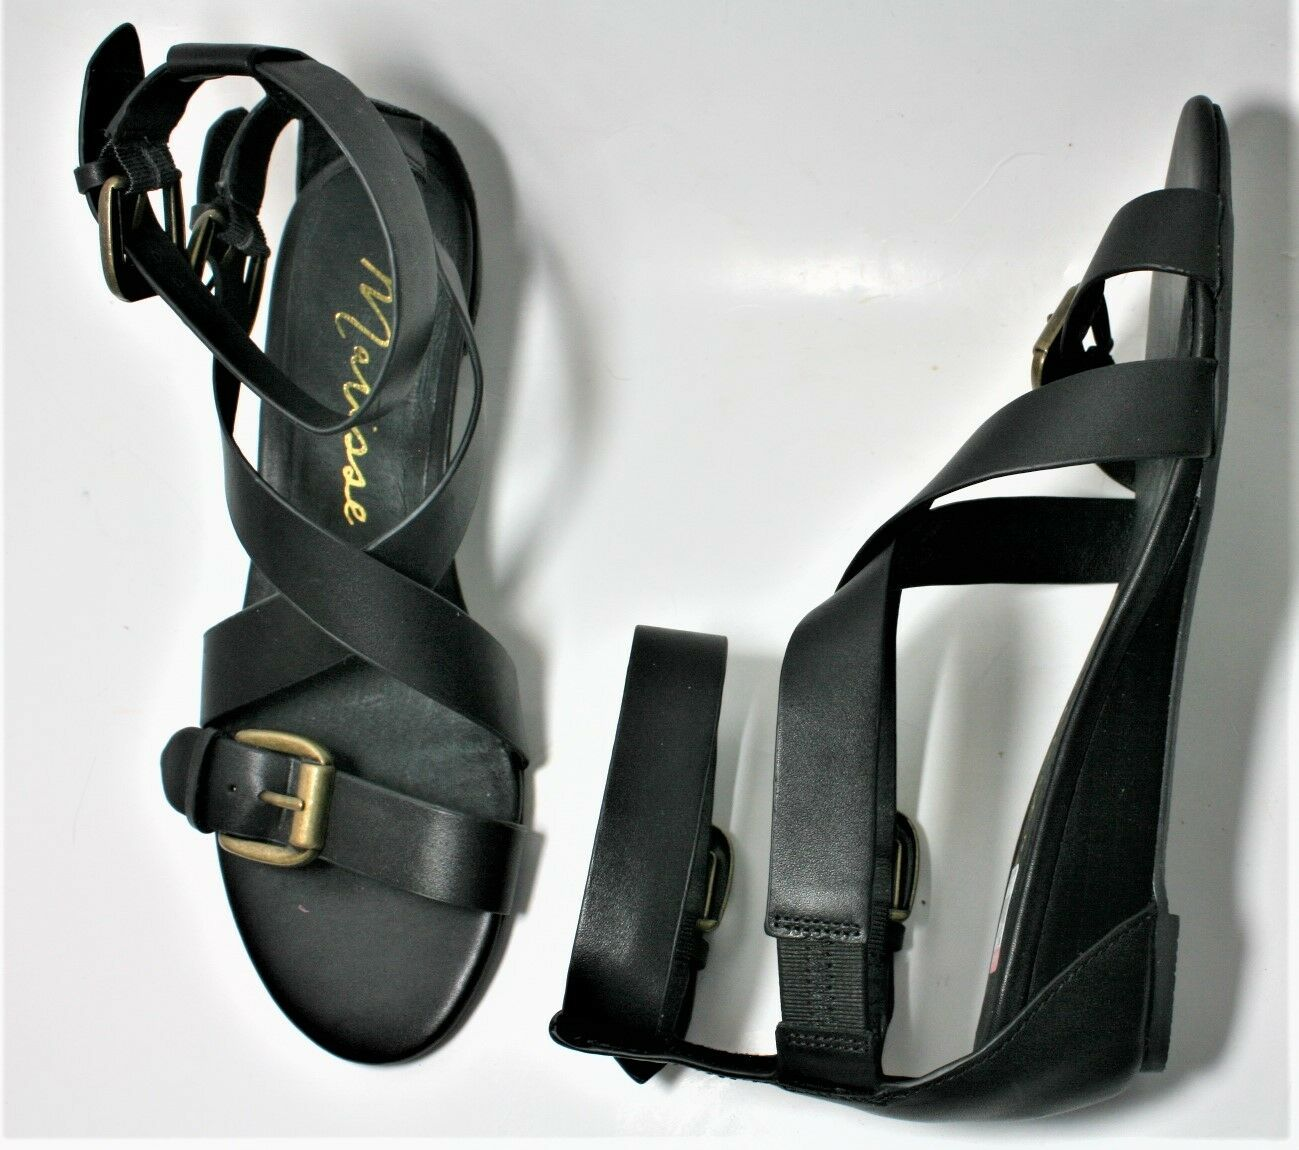 MATISSE scarpe GENUINE LEATHER LARISSA GLADIATOR SANDAL SANDAL SANDAL WEDGE nero 7.5 NEW cc6c91